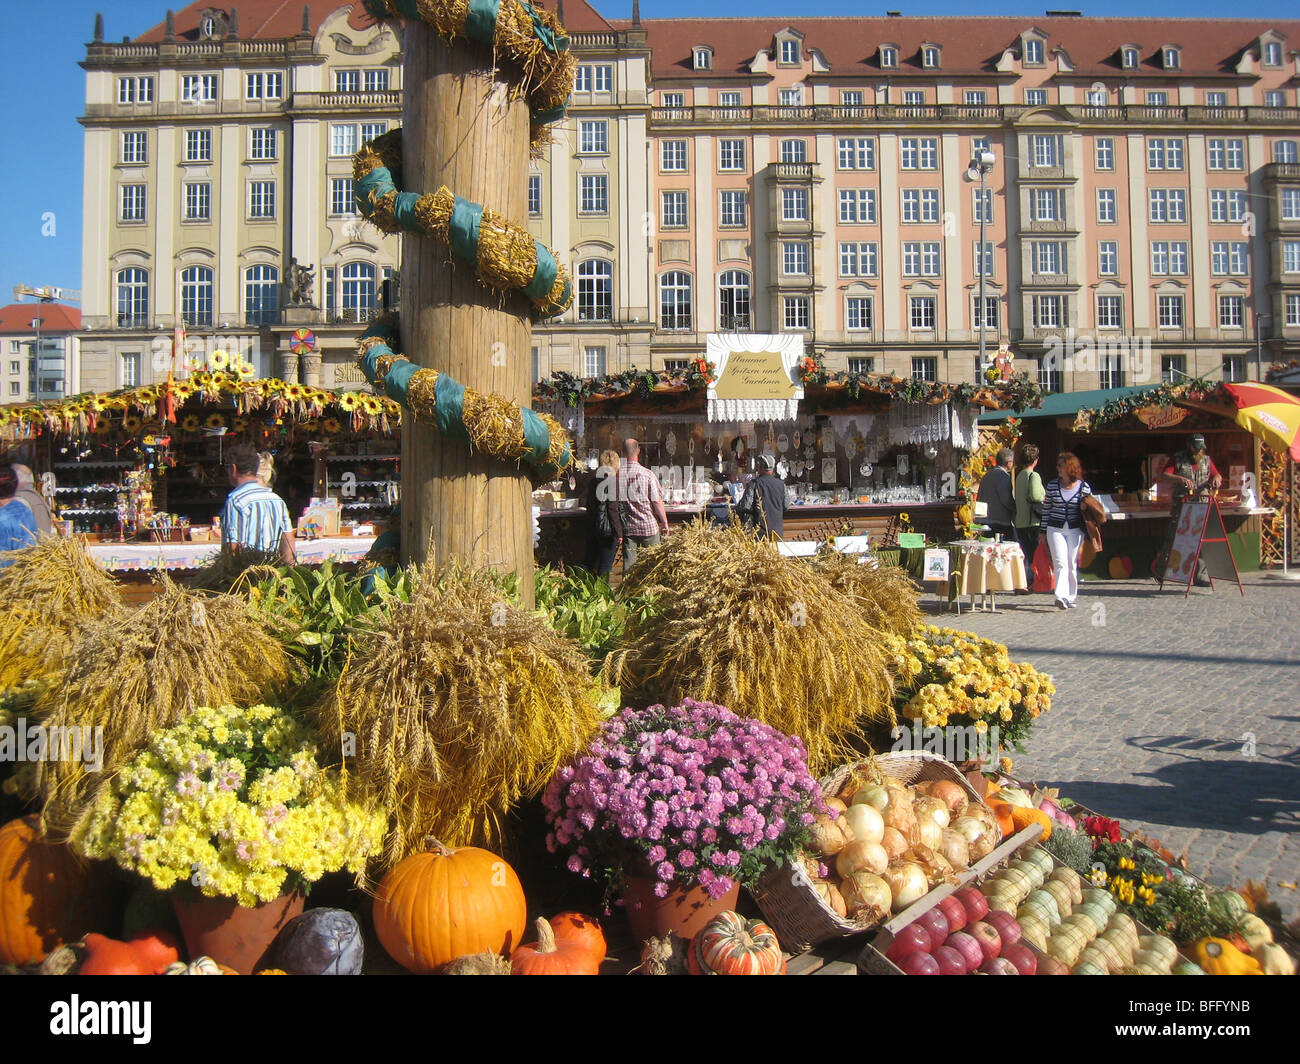 Fruit, flowers, and vegetables at foot of decorative flag pole erected for an Autumn fair in the centre of Dresden - Stock Image